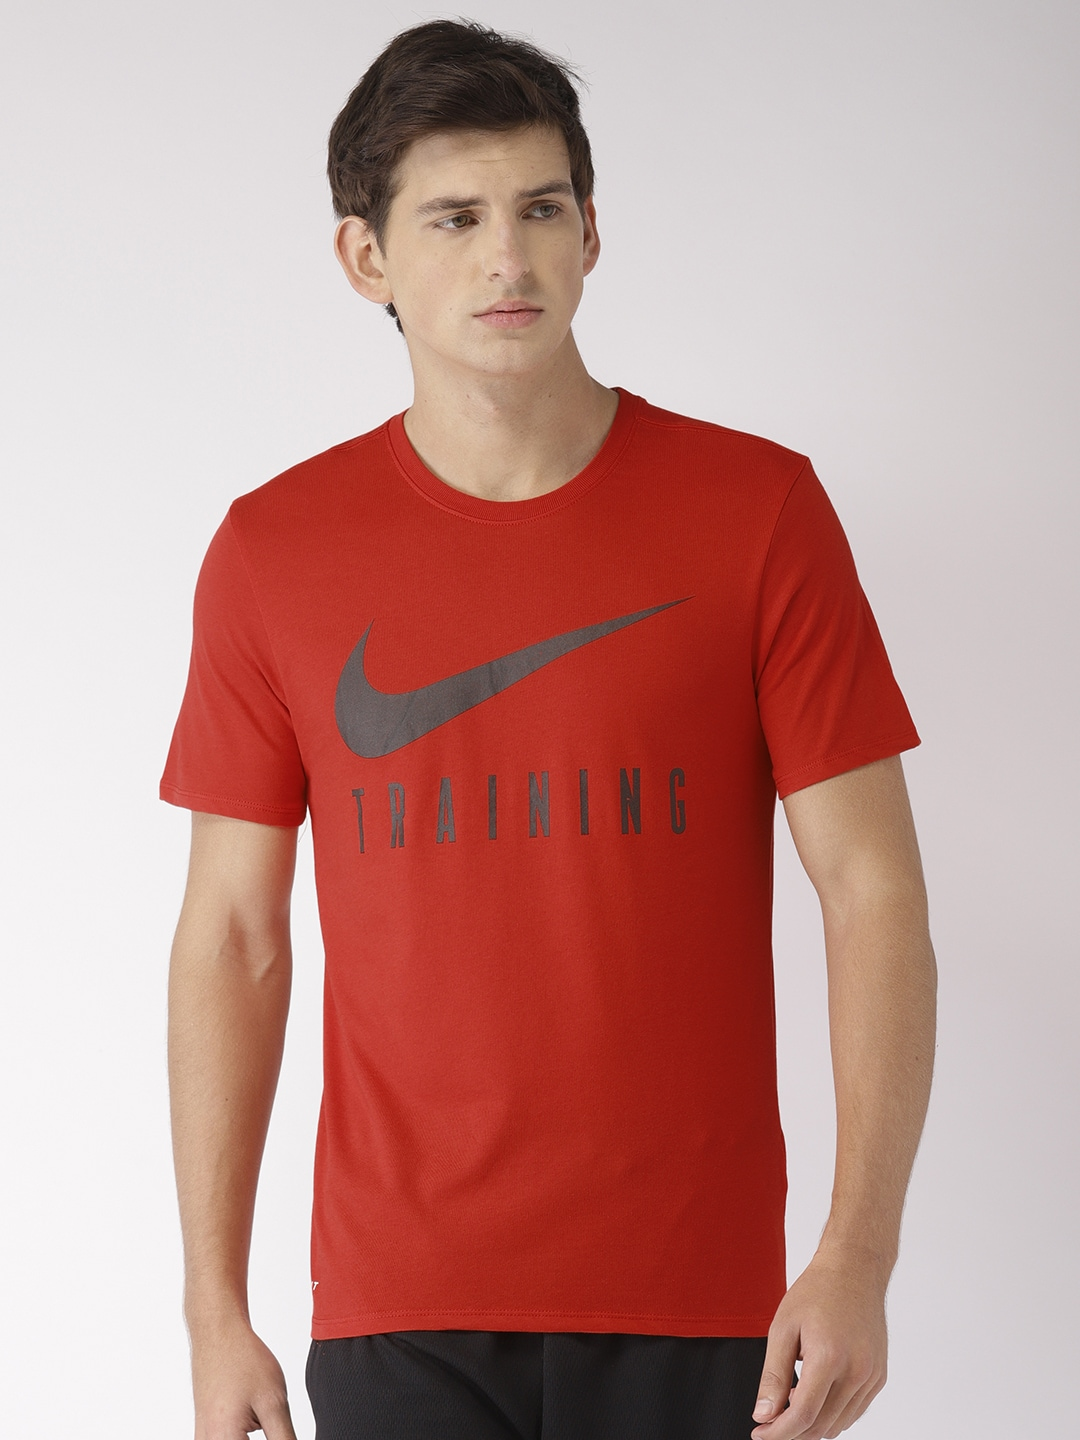 8866d155 Nike Men Leggings Tshirts - Buy Nike Men Leggings Tshirts online in India